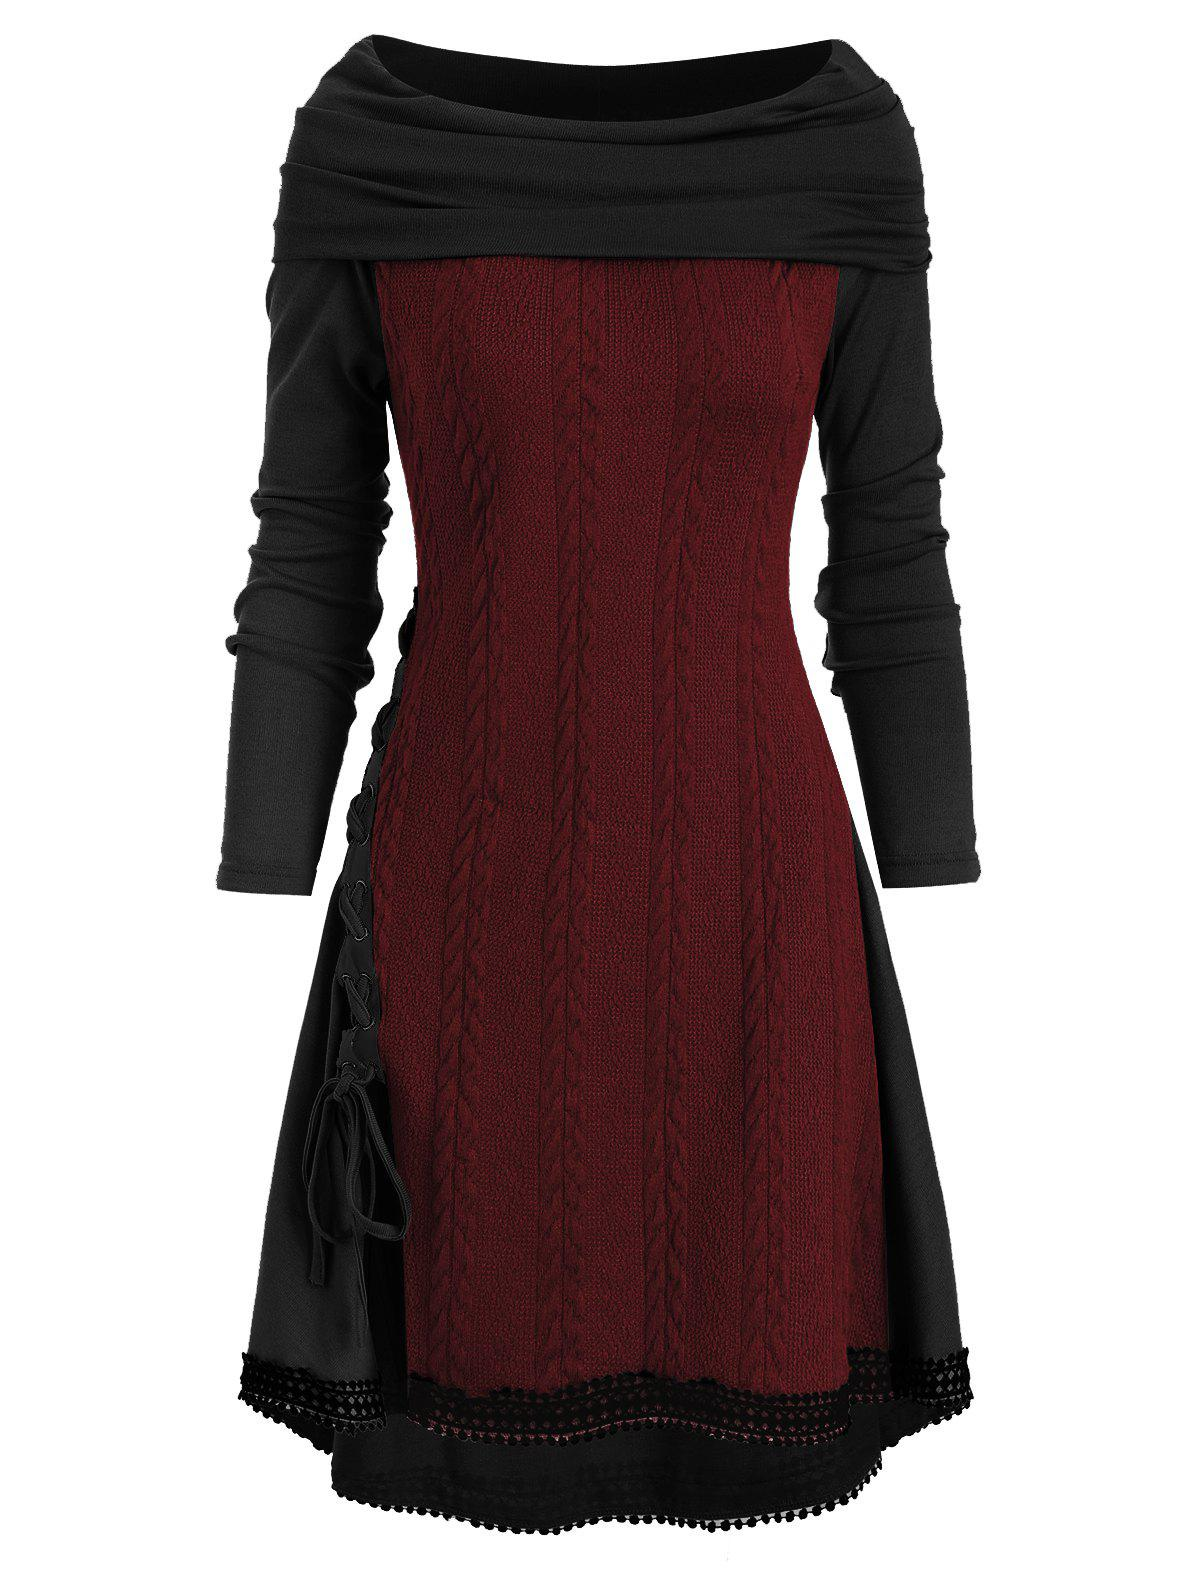 Cowl Neck Lace Up Guipure Panel Longline Knitwear - RED WINE XL